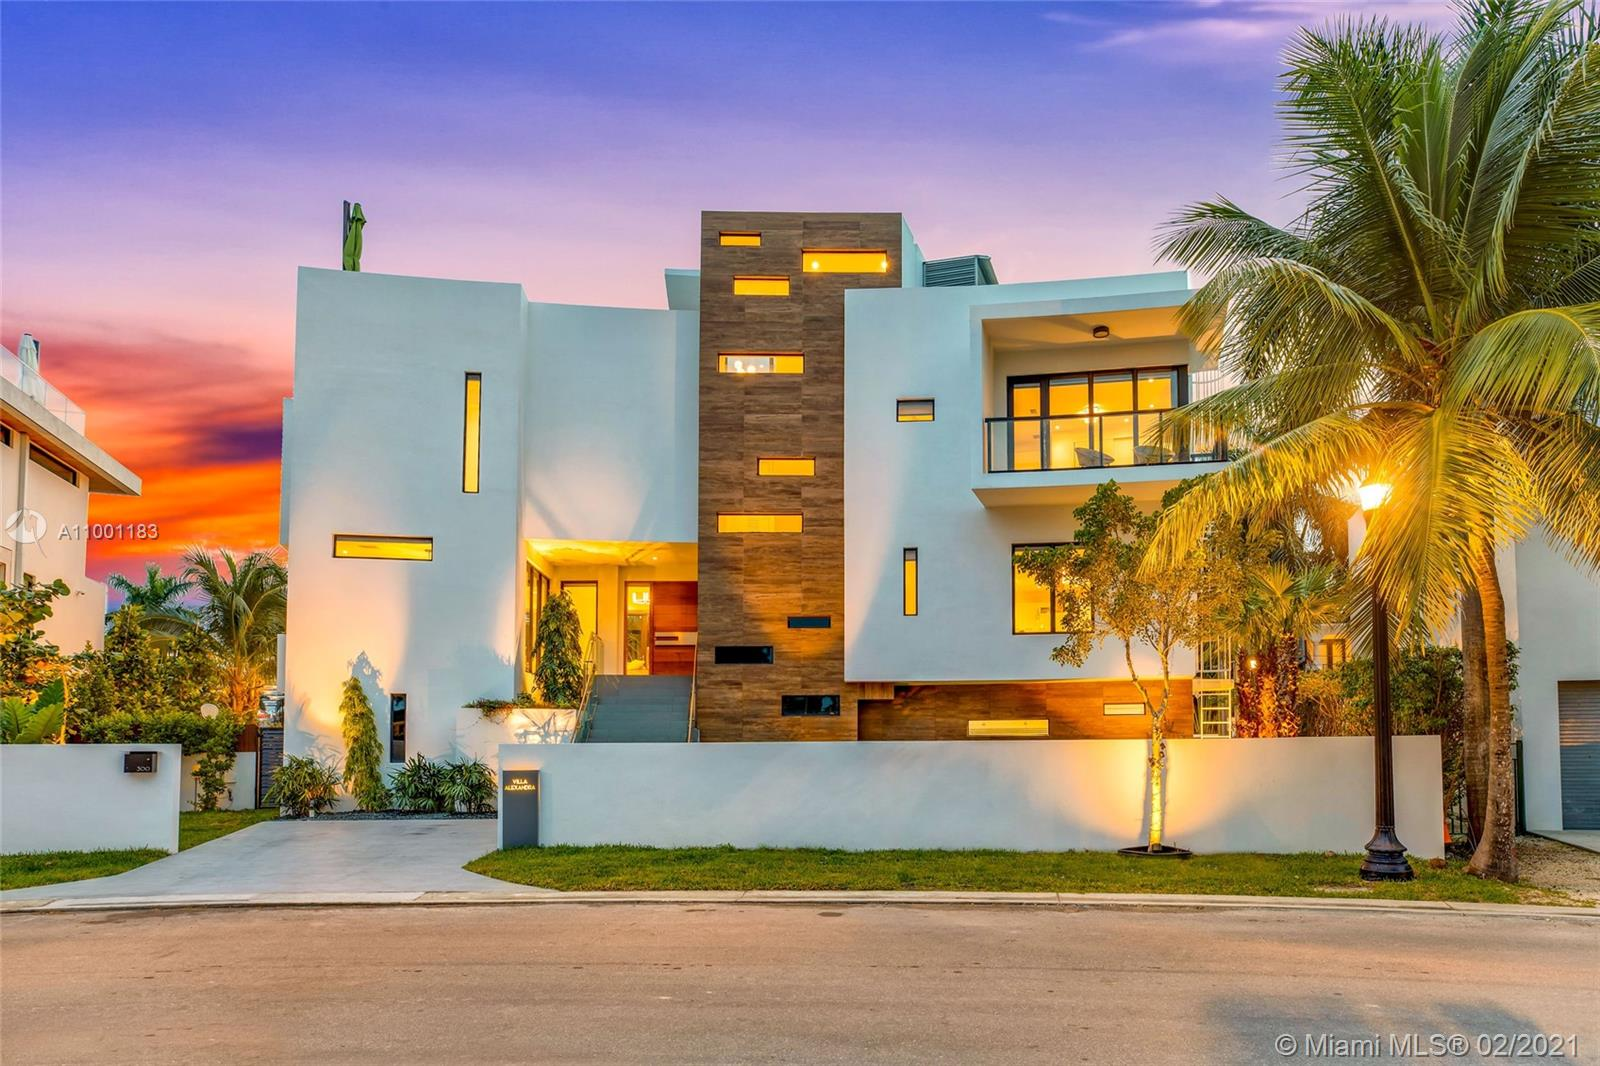 300 Palm Ave Luxury Real Estate